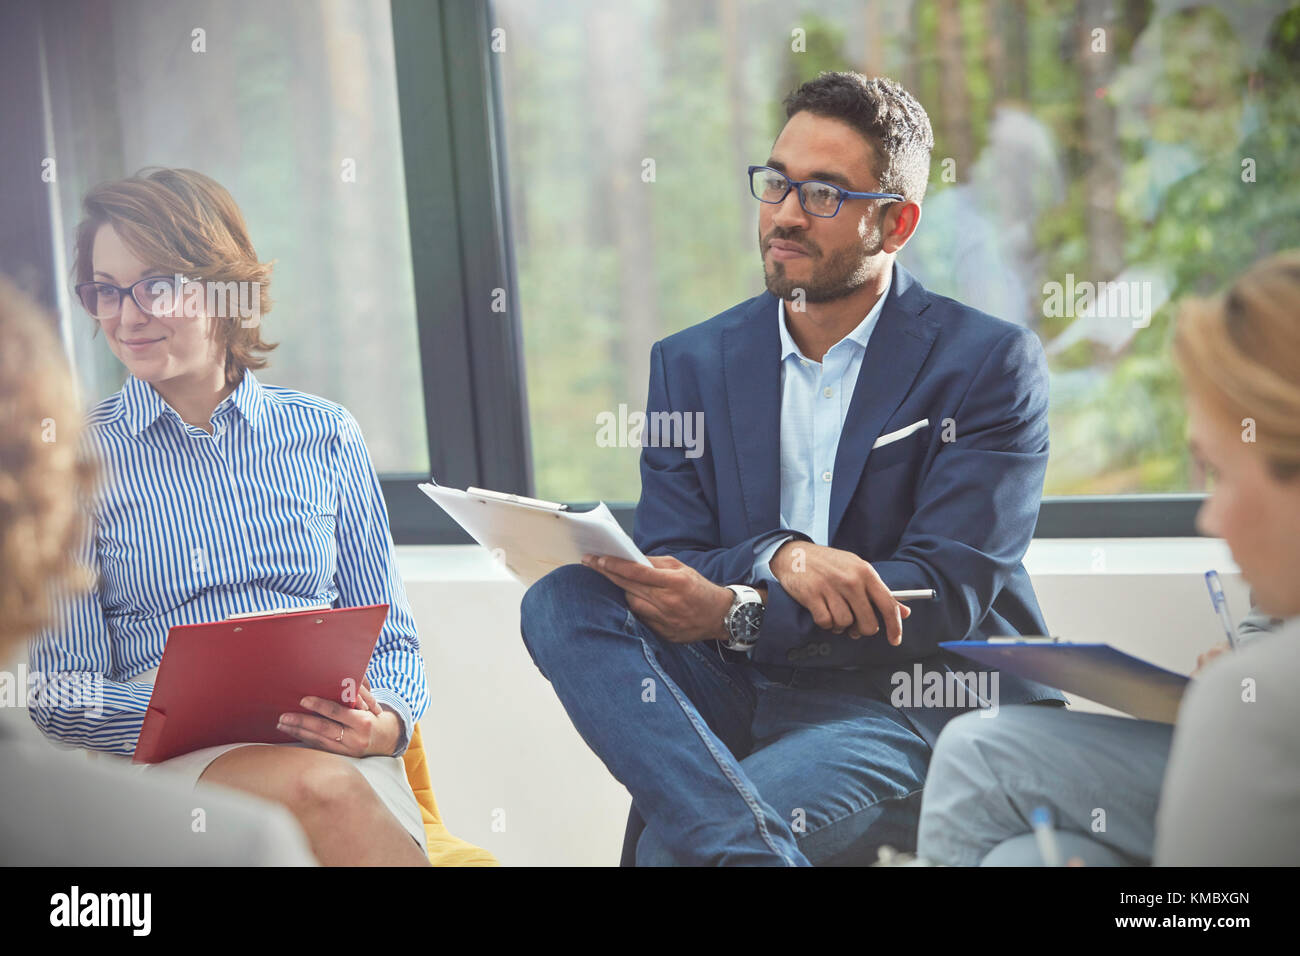 Attentive man with clipboard listening in group therapy session - Stock Image